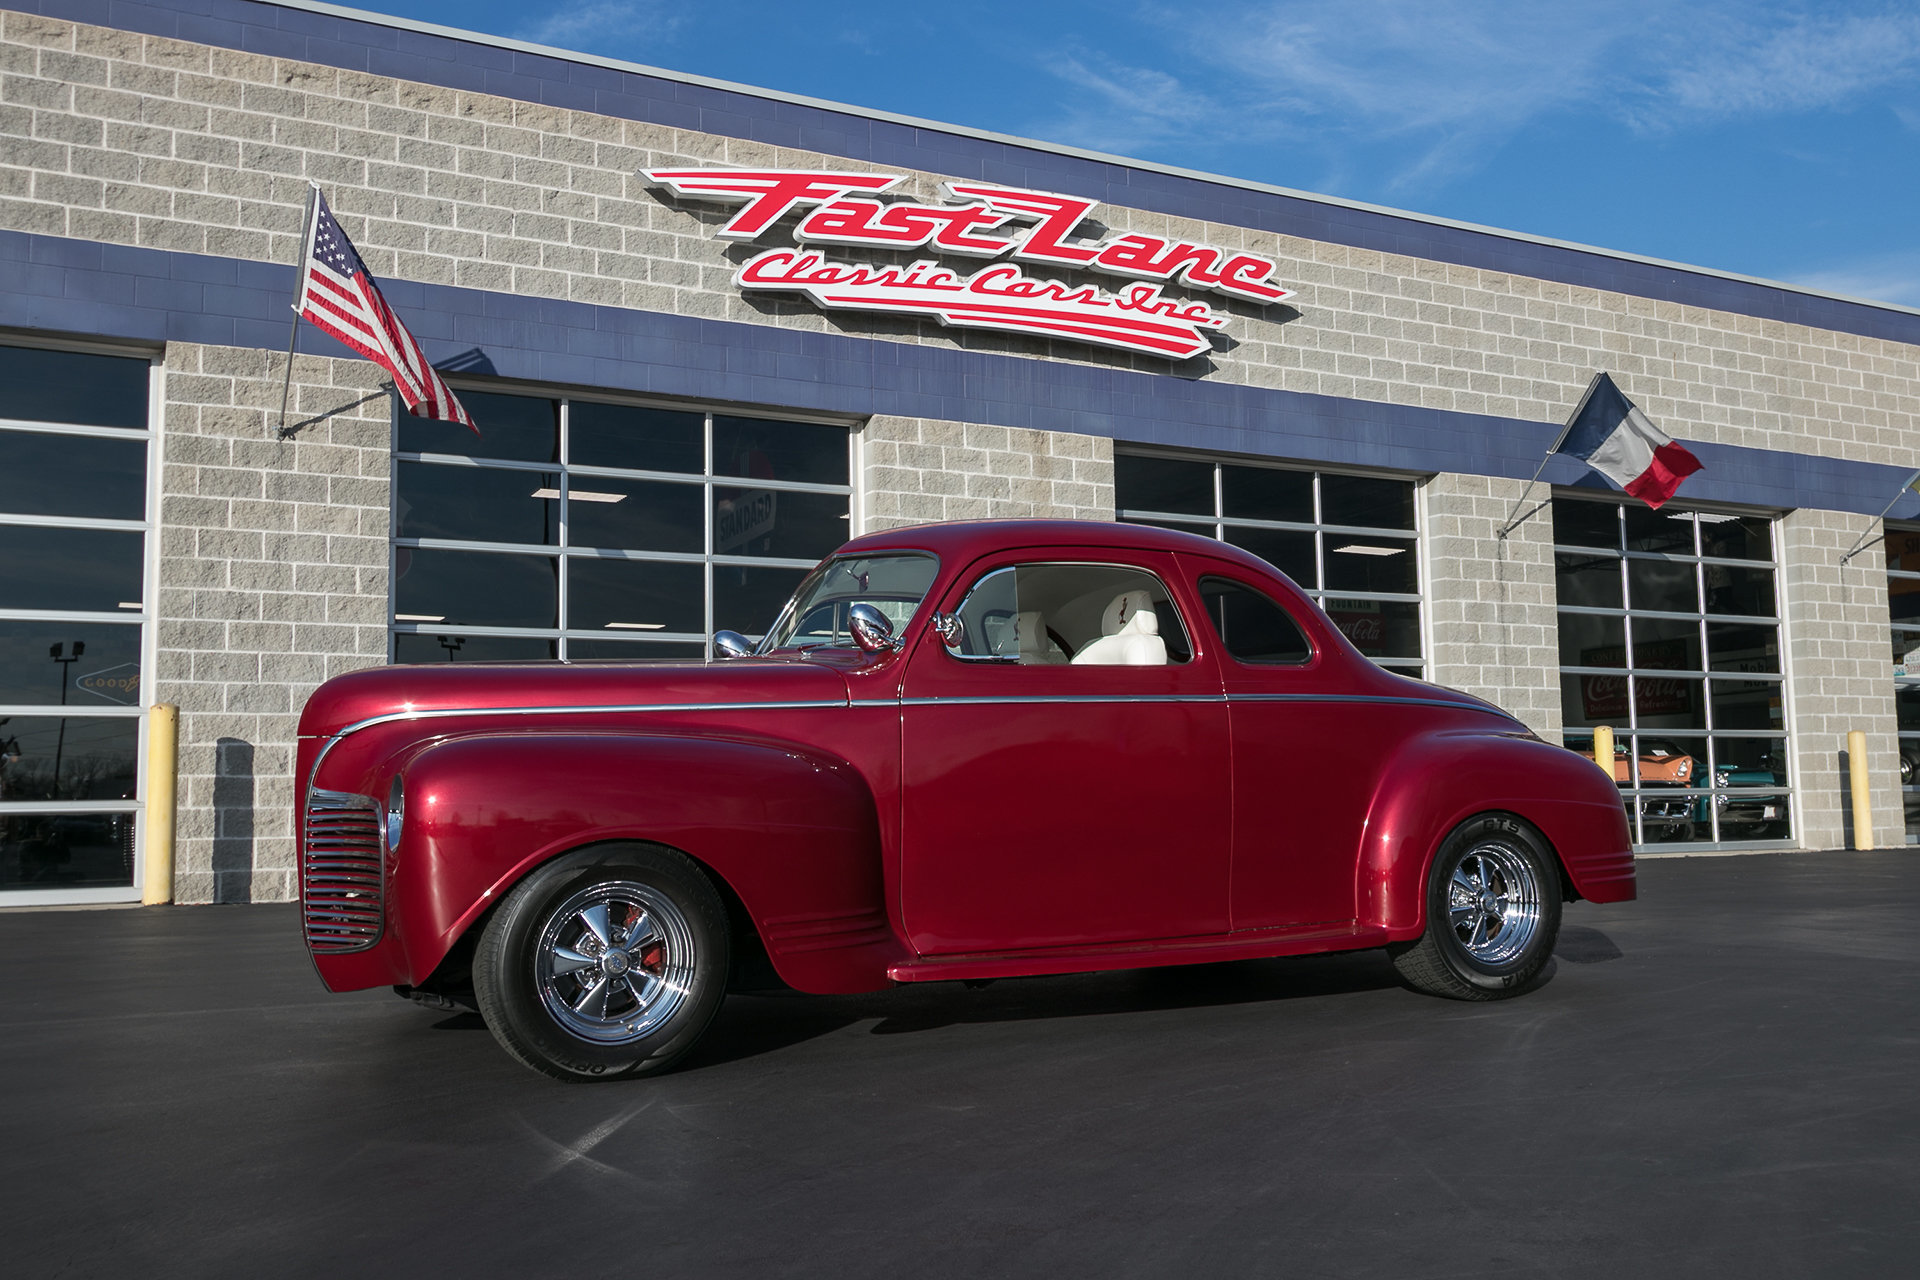 1941 Plymouth Special Deluxe Fast Lane Classic Cars 2 Door Sedan